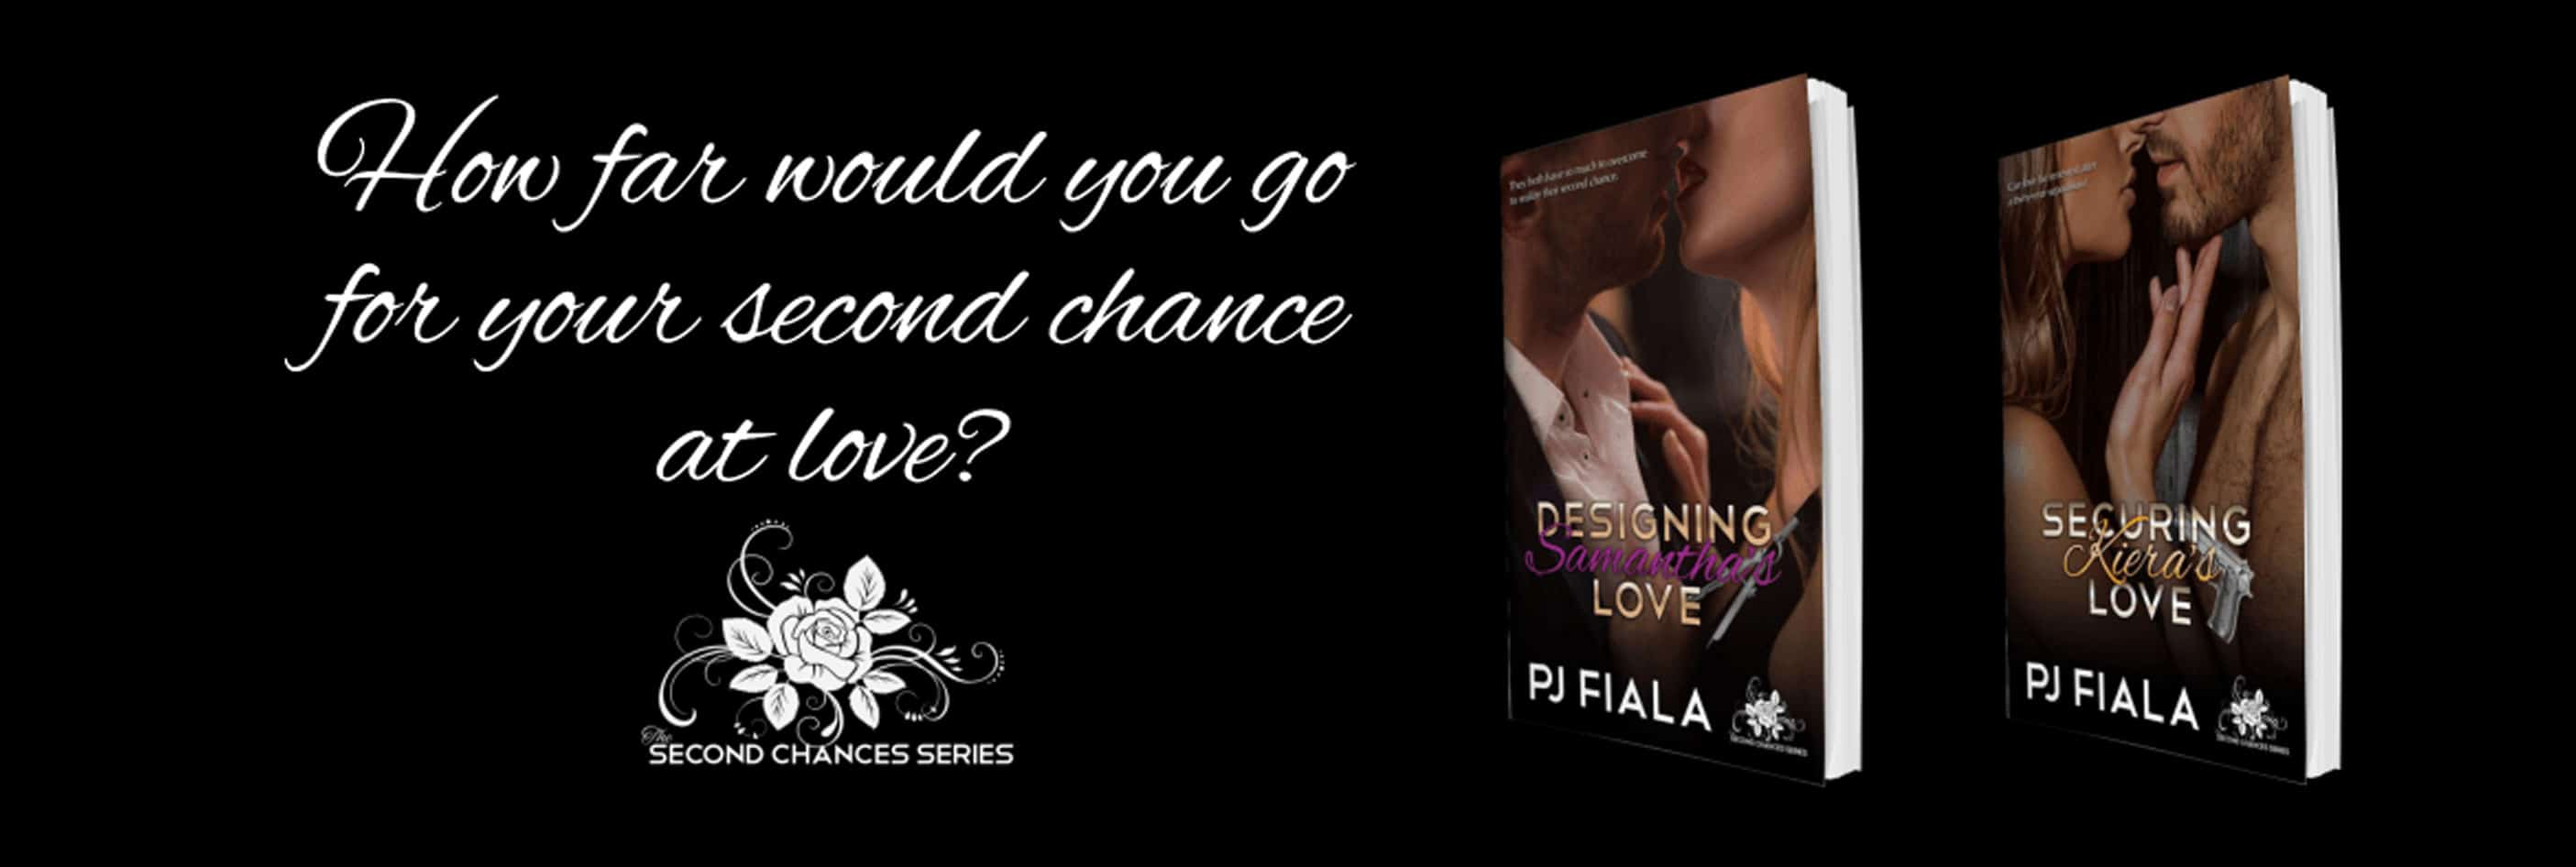 Second Chances, by Romance Author PJ Fiala